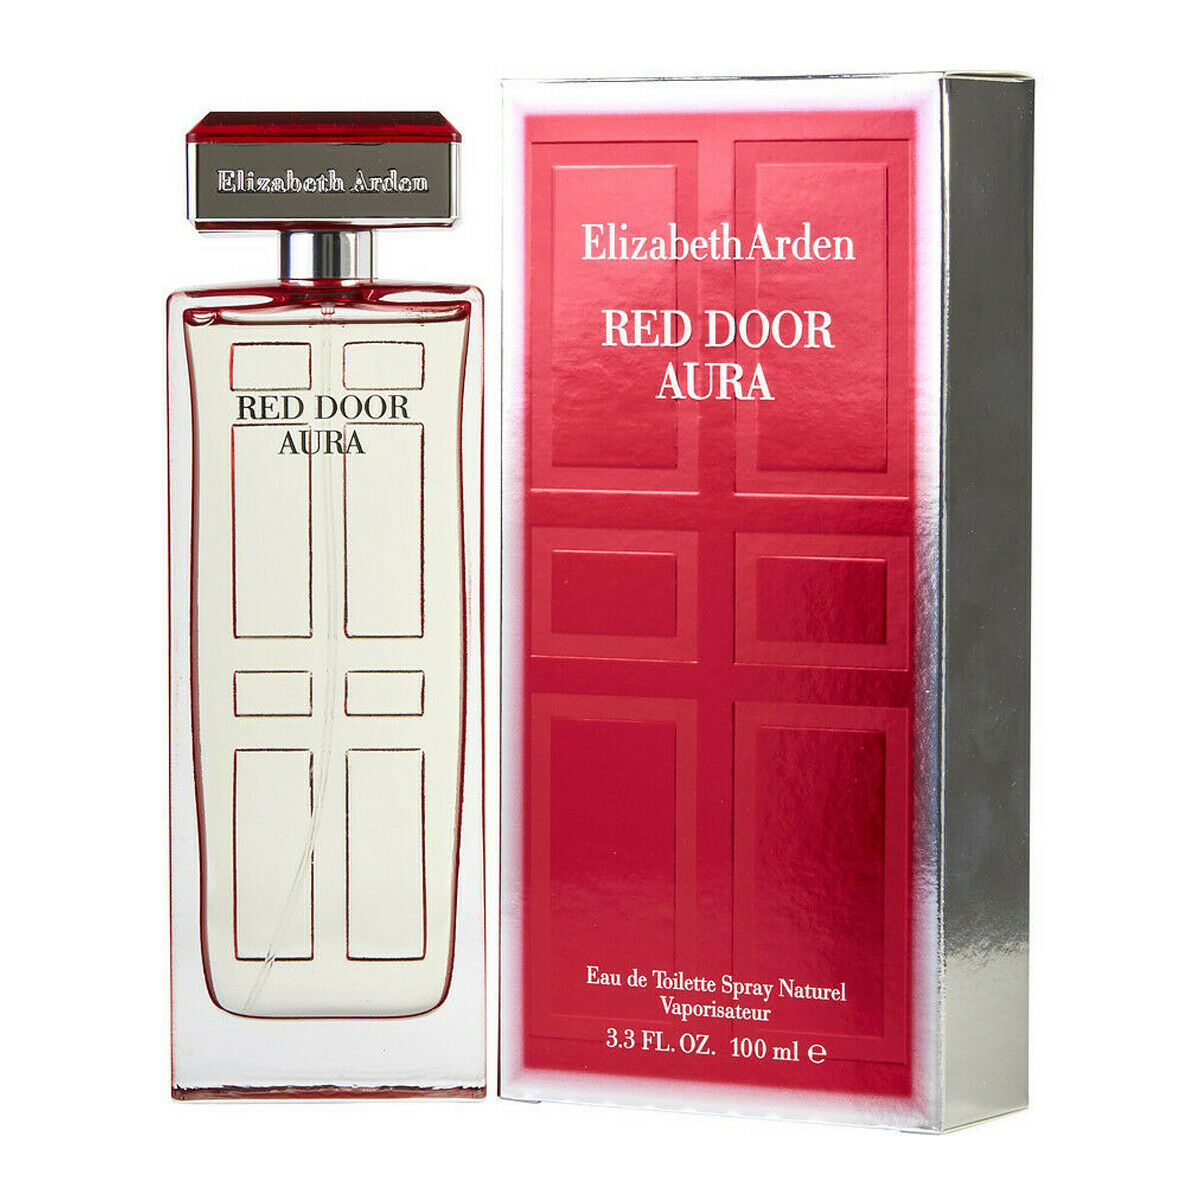 Elizabeth Arden Red Door Aura 100ml EDT